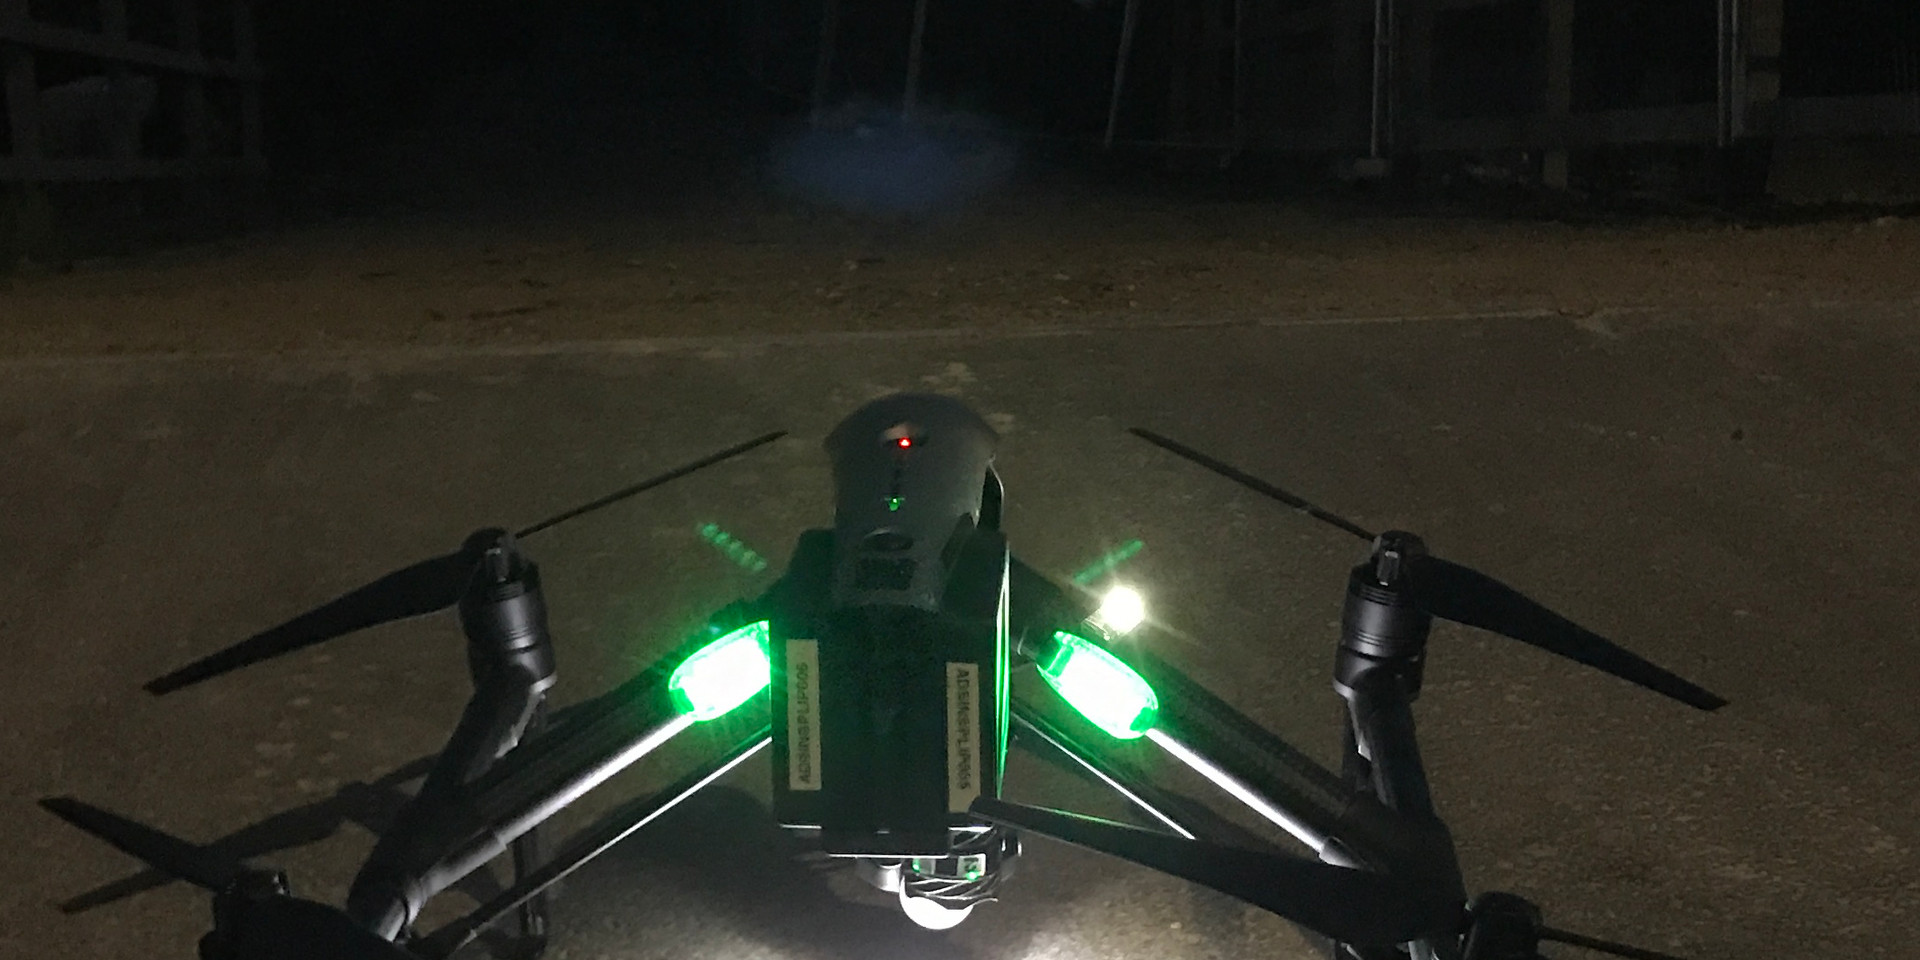 Ready for night operations